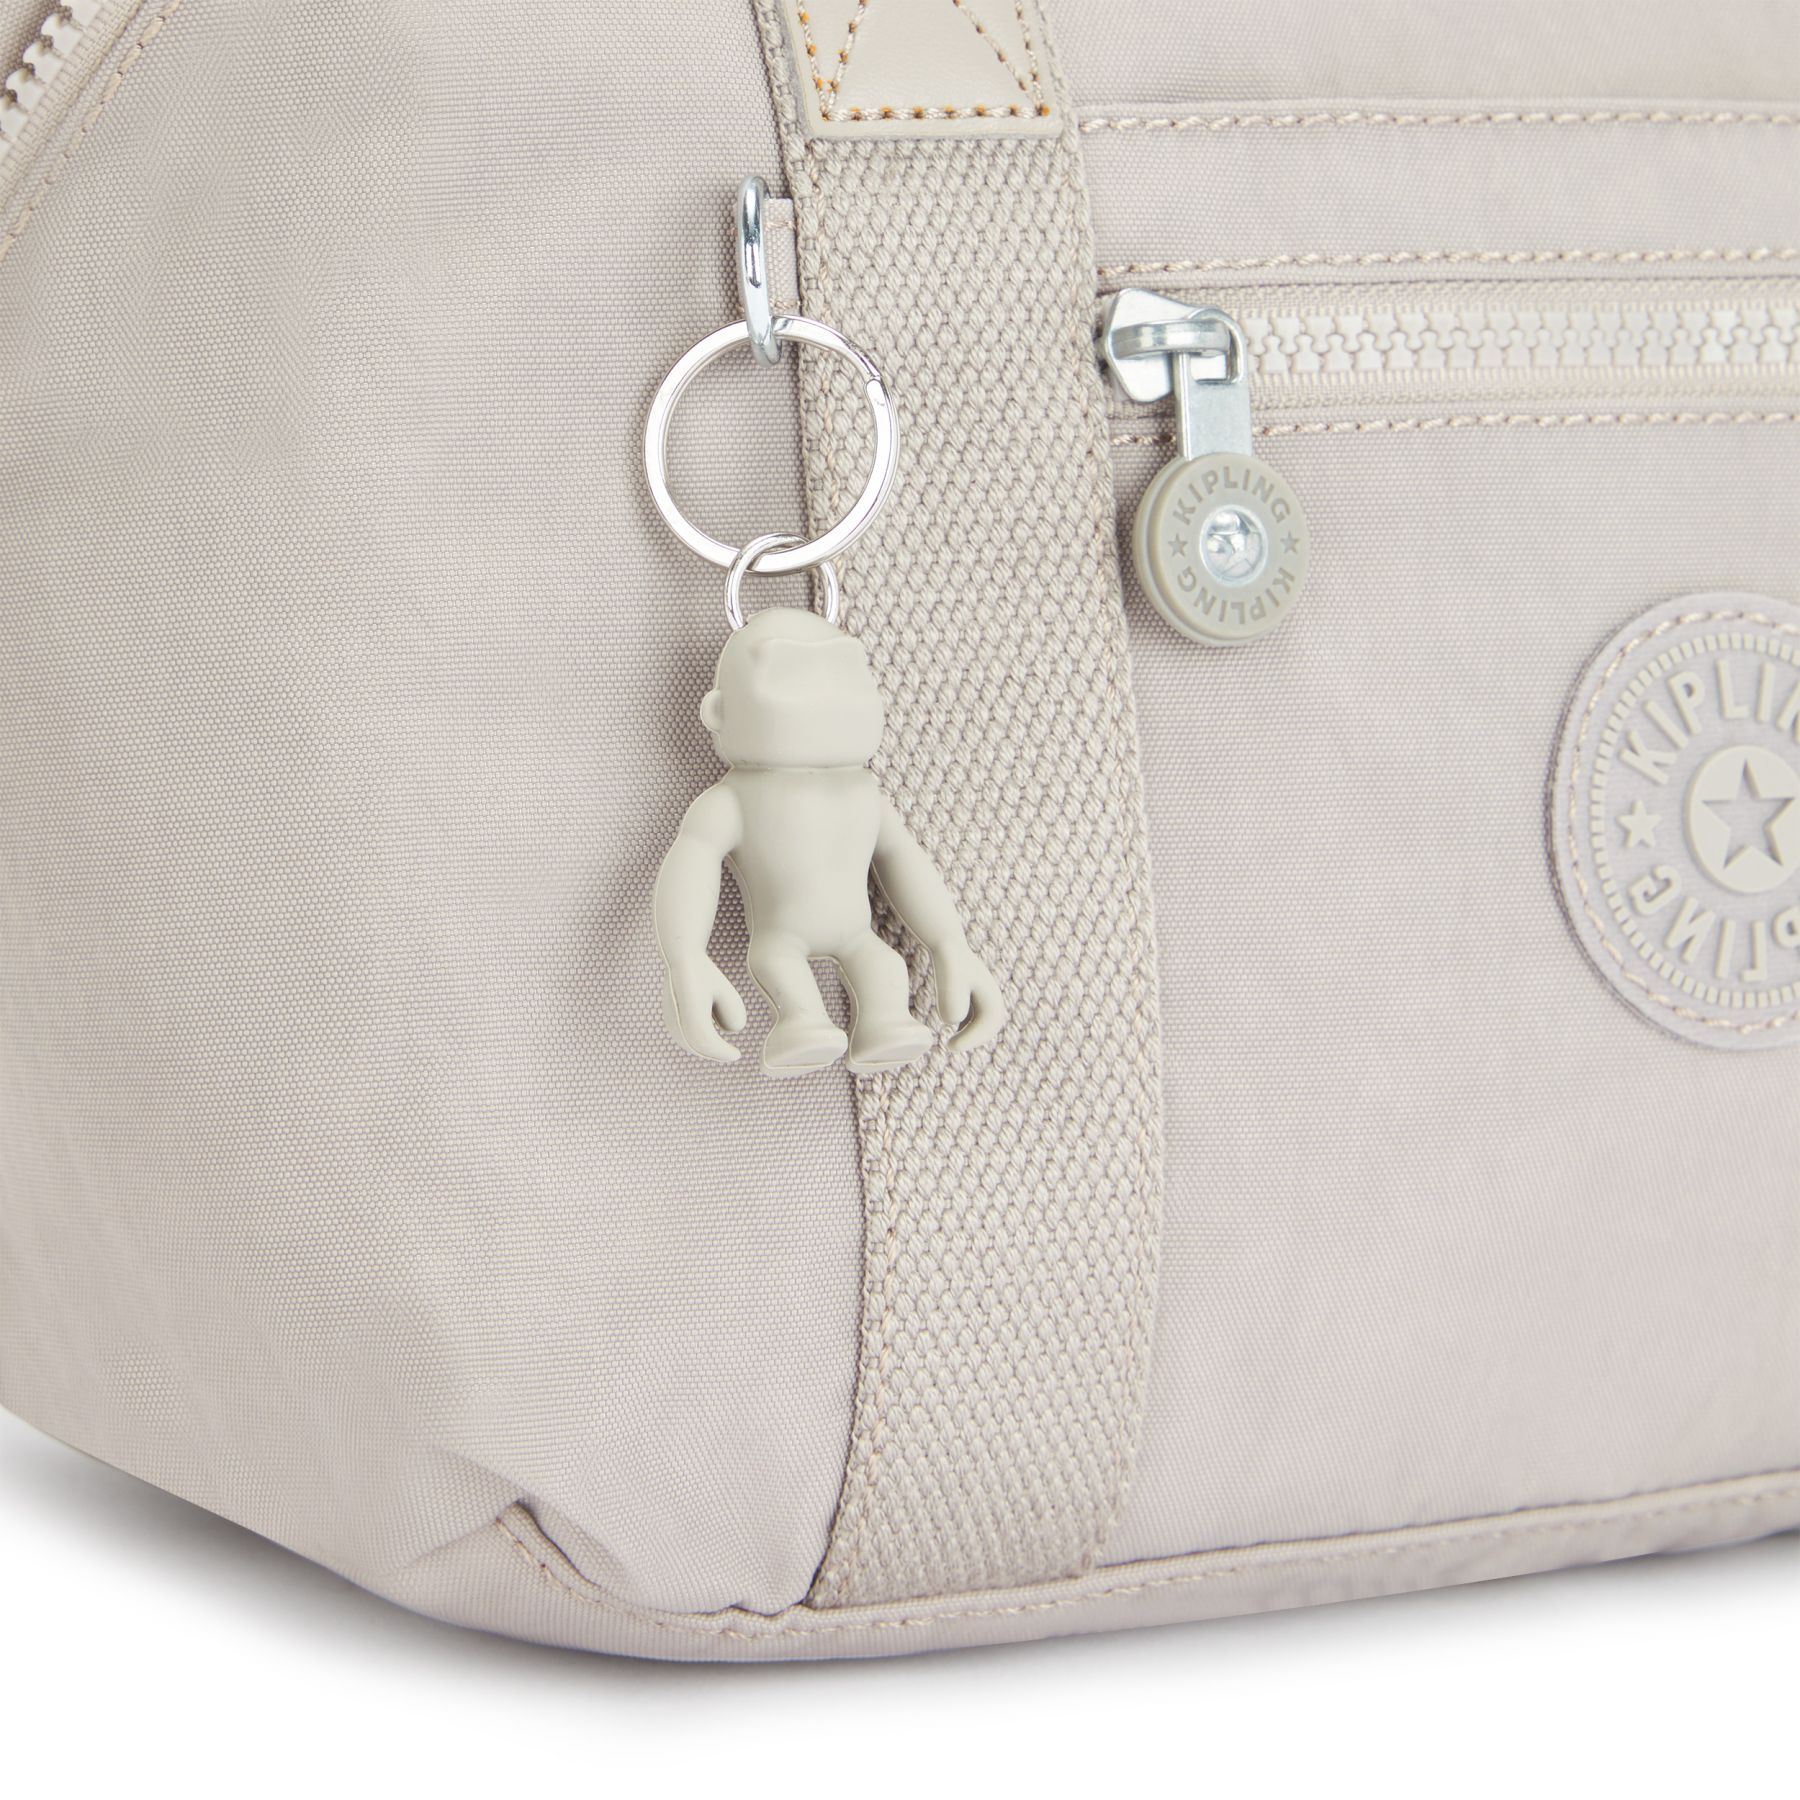 ART MINI BAGS by Kipling